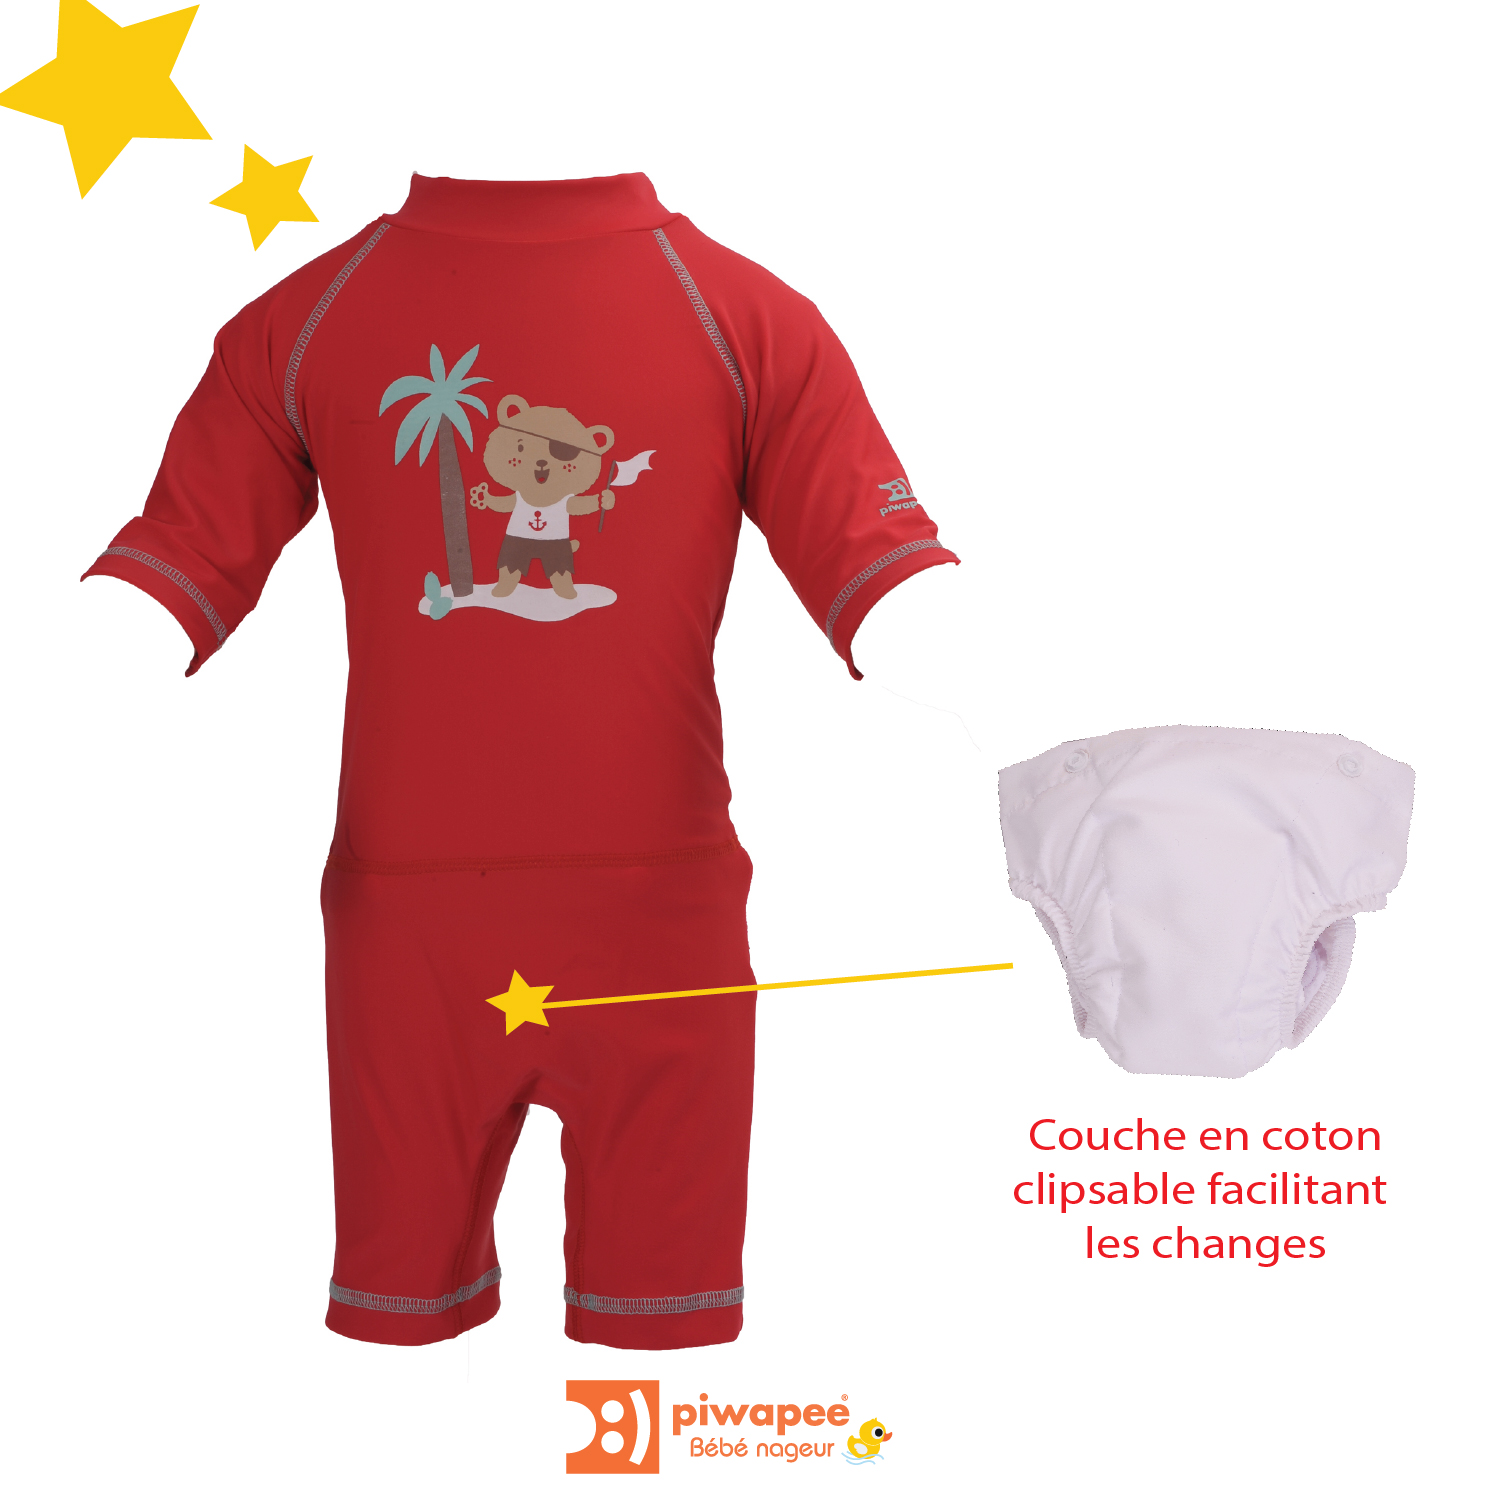 Illustration COMBINAISON ANTIUV UPF50+ AVEC MAILLOT COUCHE CLIPSABLE  OURSON ROUGE 8-11 KG / 6-12M